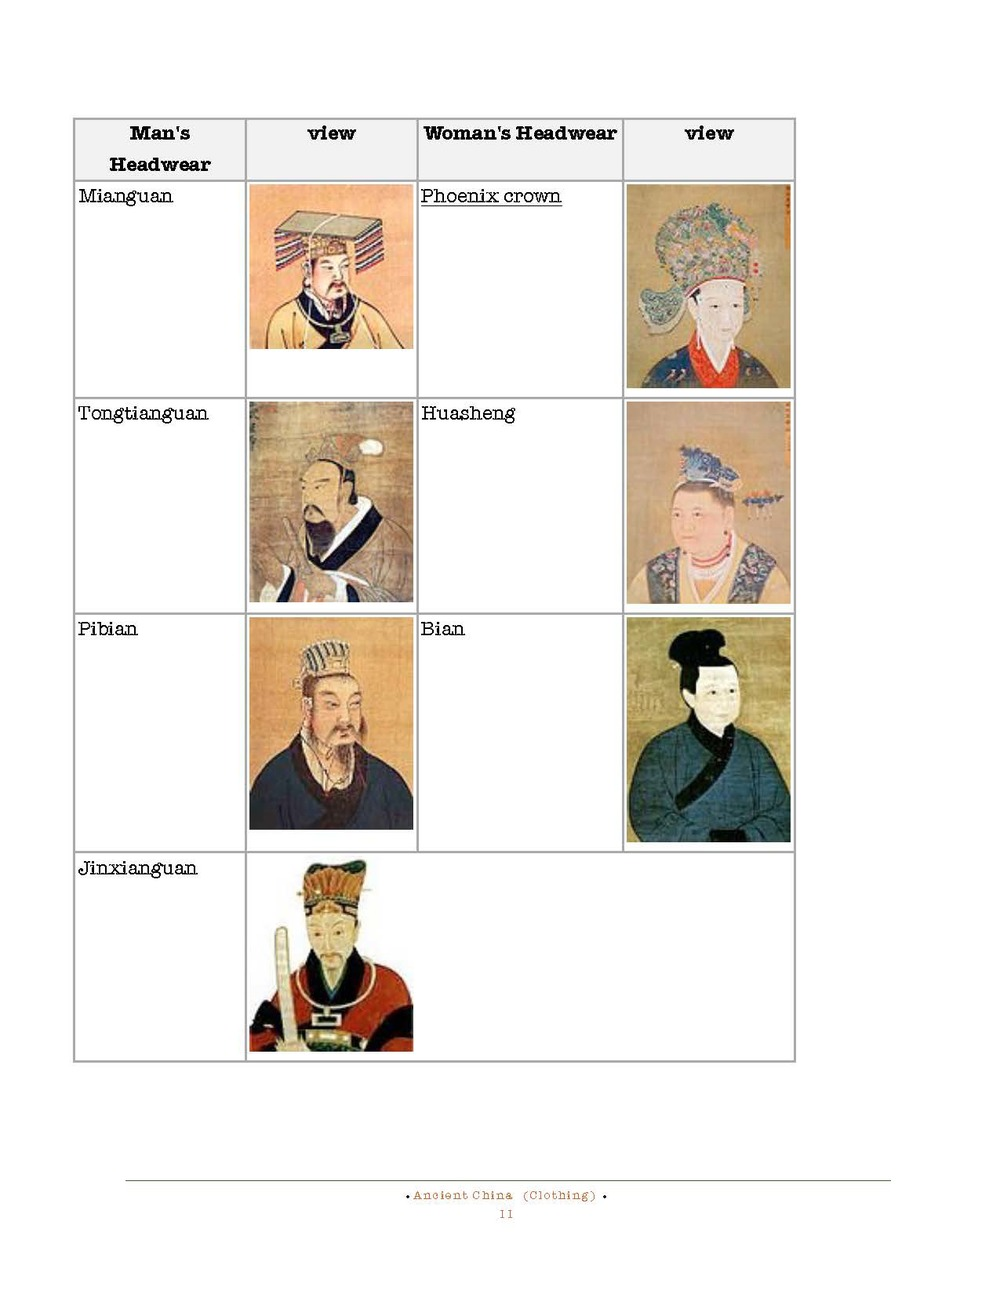 HOCE- Ancient China Notes (clothing)_Page_11.jpg